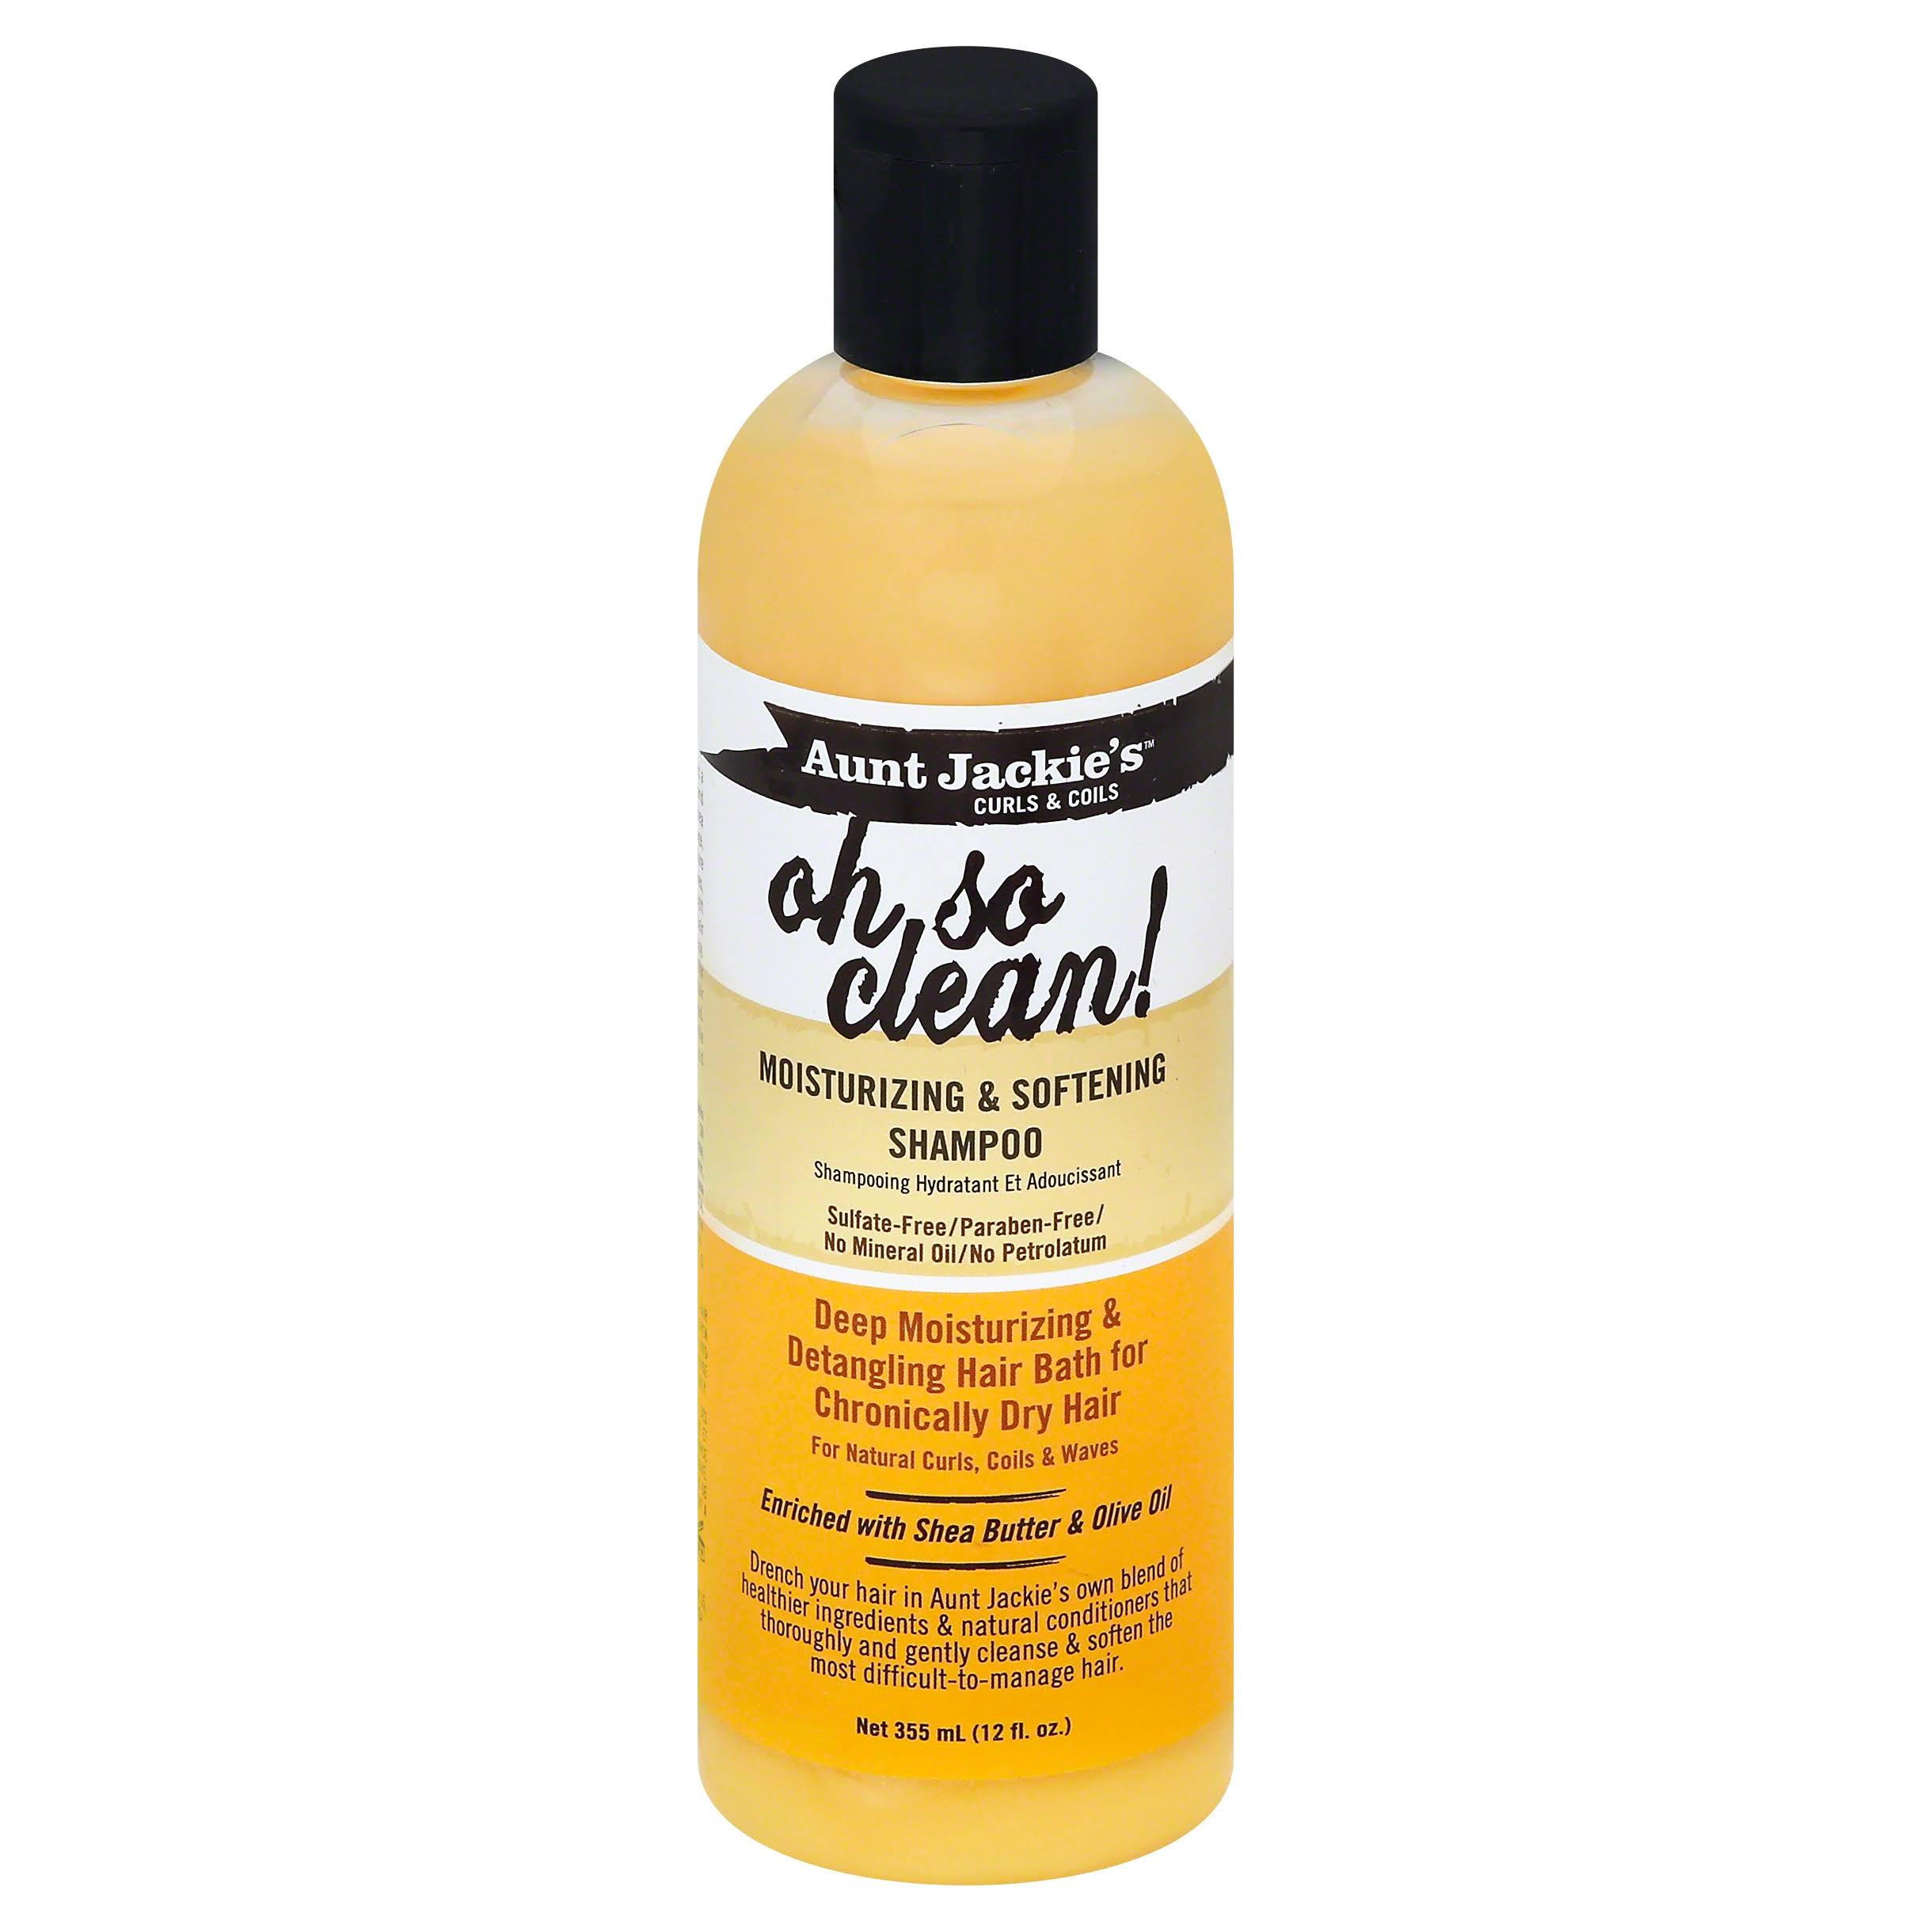 Aunt Jackie's Oh So Clean Moisturizing and Softening Shampoo - 12oz